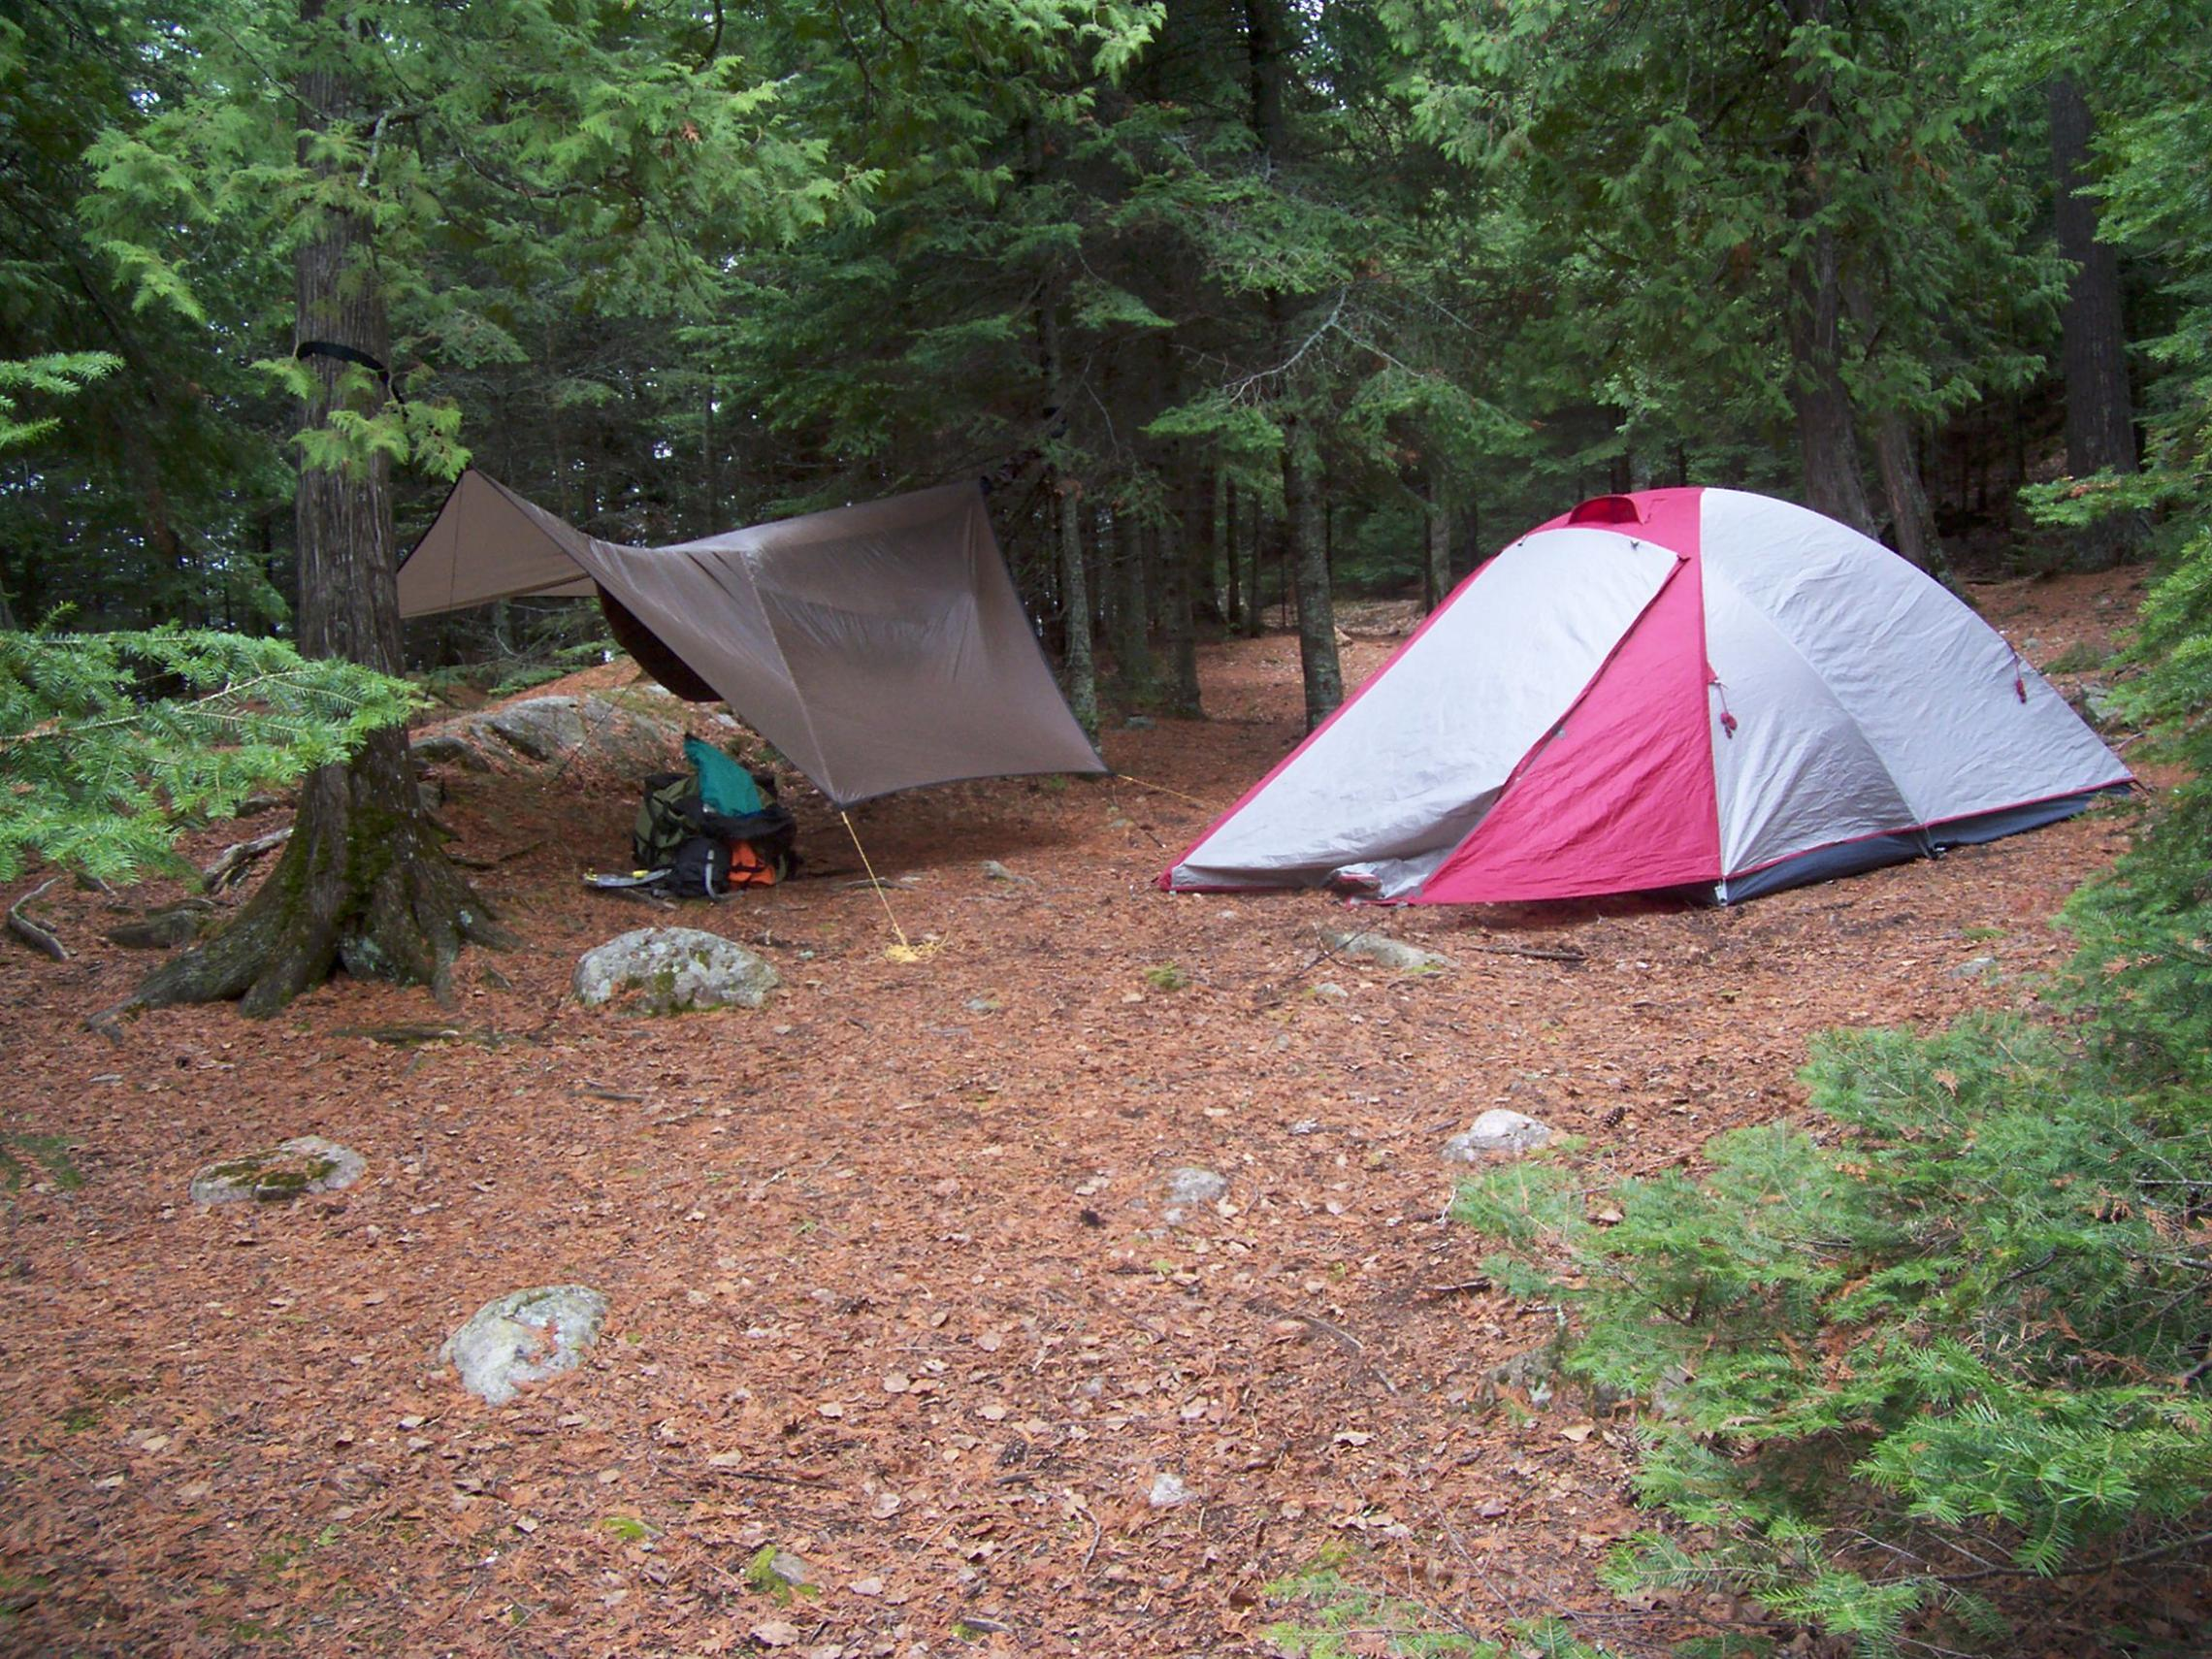 Bwca Boundary Waters Items For Sale Or Wanted